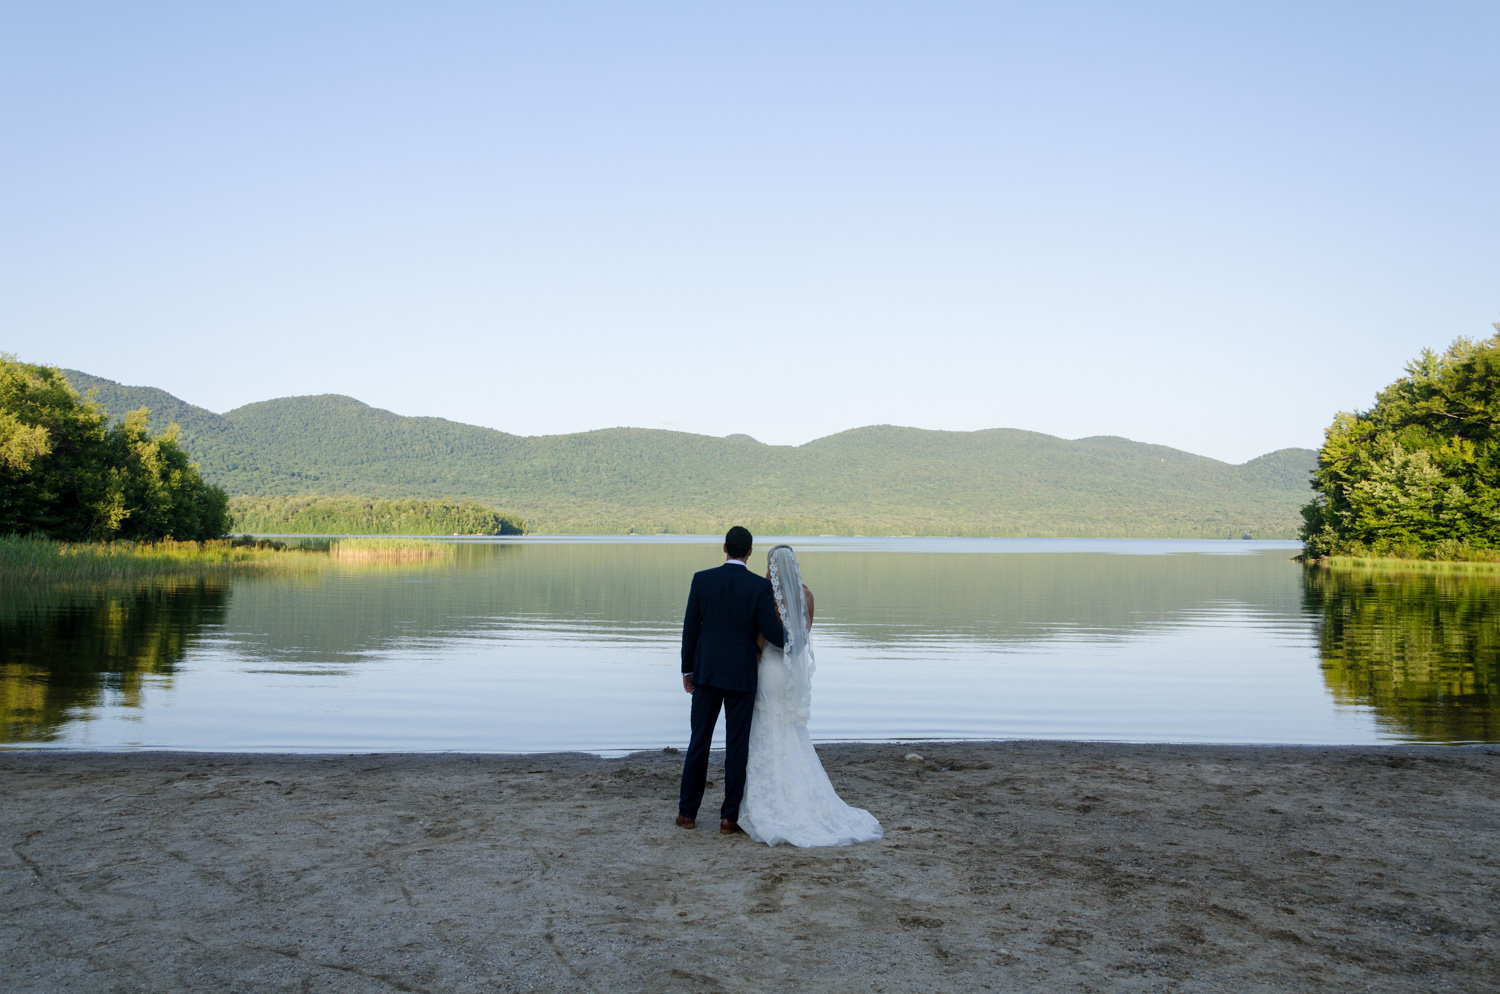 An adventurouse bride and groom in the mountains